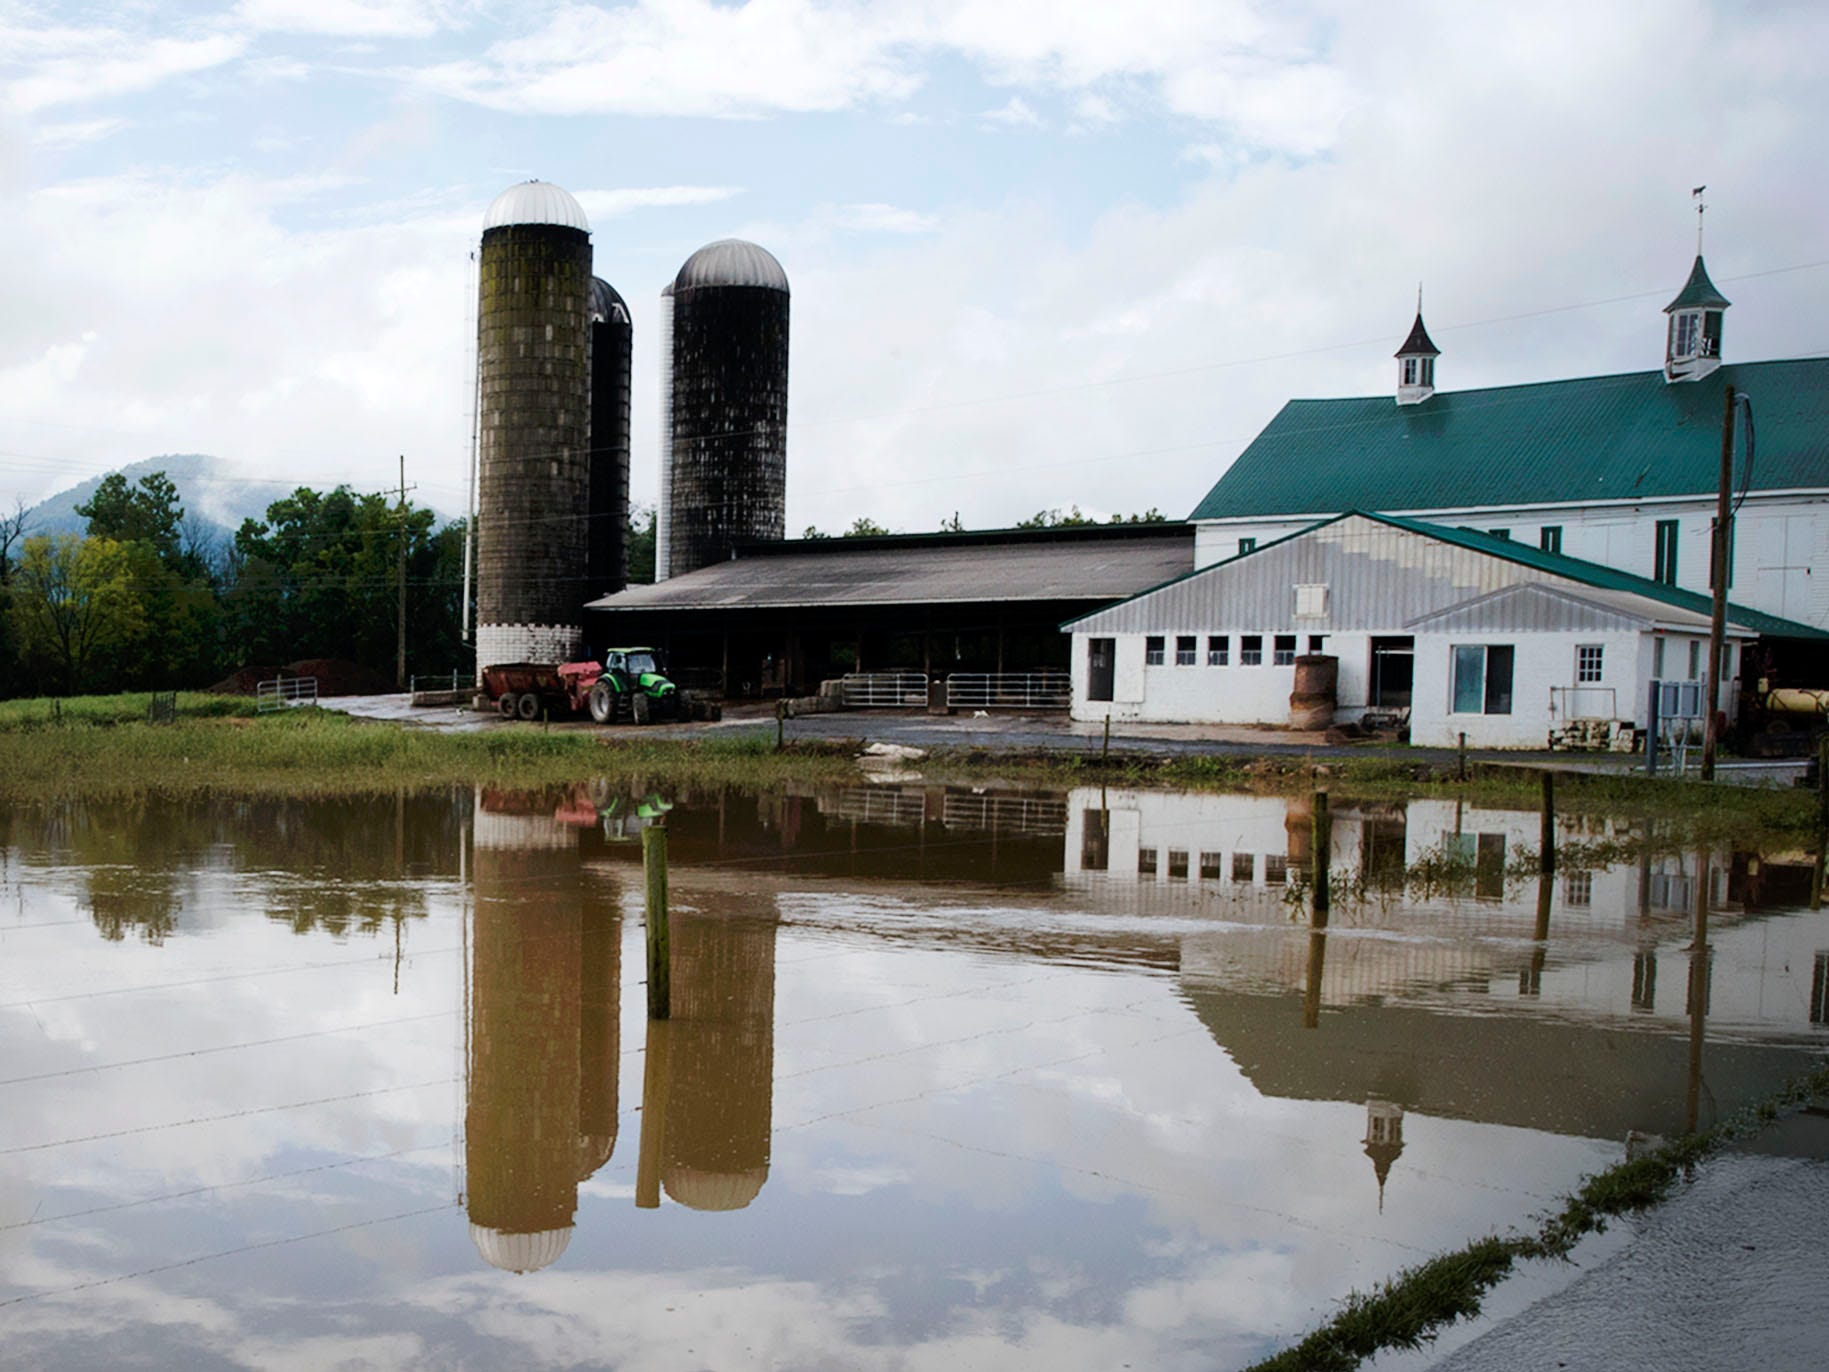 A farm in the 11,000 block of Shimpstown road experienced flooding. A bridge was destroyed and there is street flooding and road closings around Shimpstown Road in the Mercersburg area on Thursday, September 13, 2018.